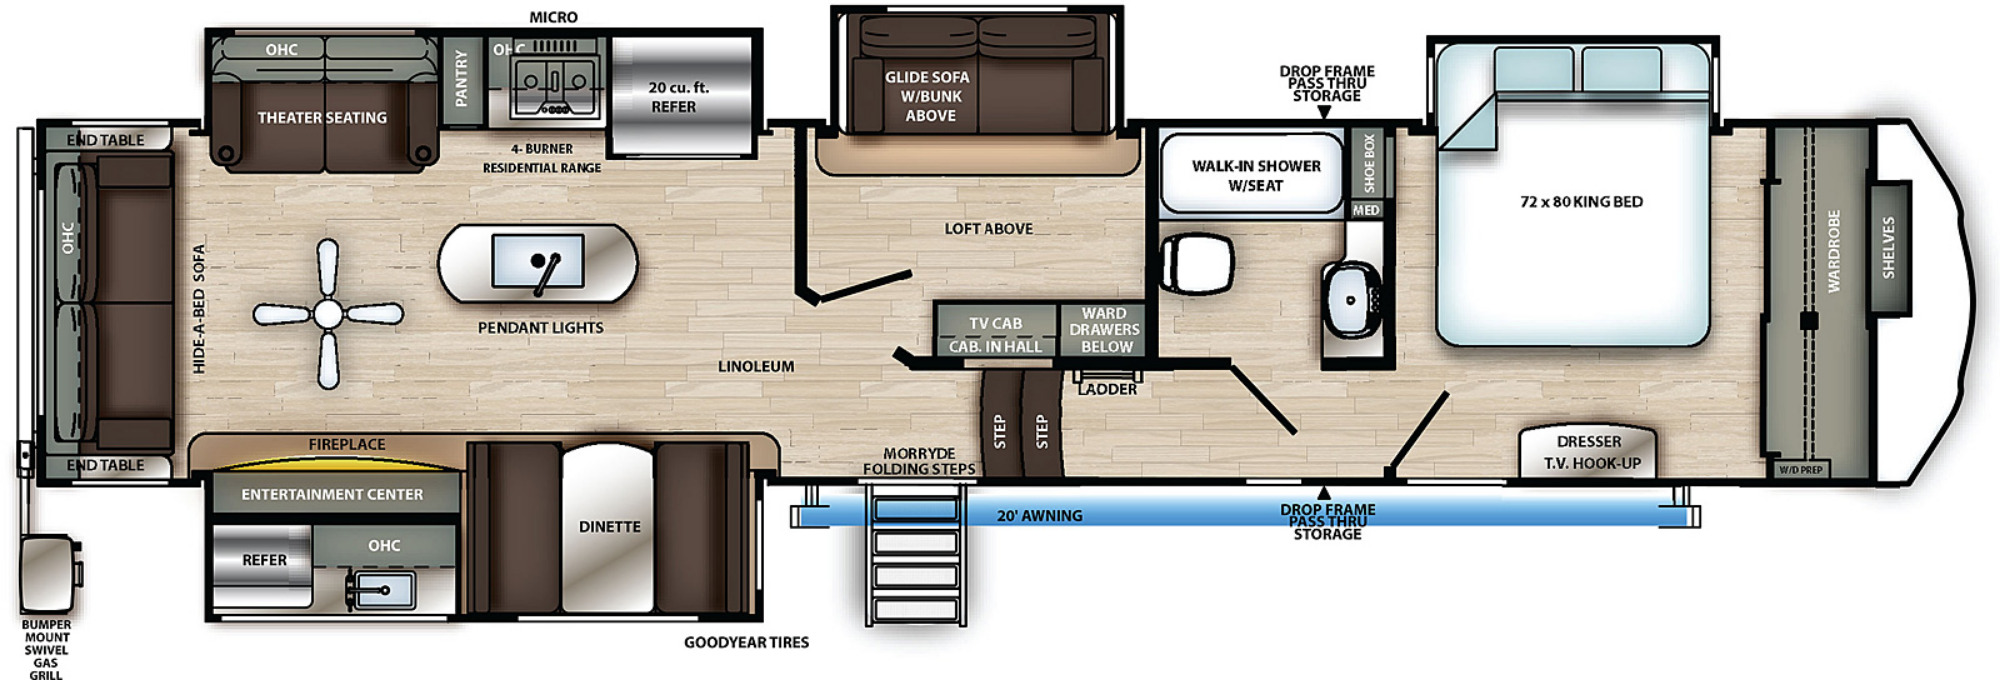 View Floor Plan for 2021 FOREST RIVER SANDPIPER 372LOK